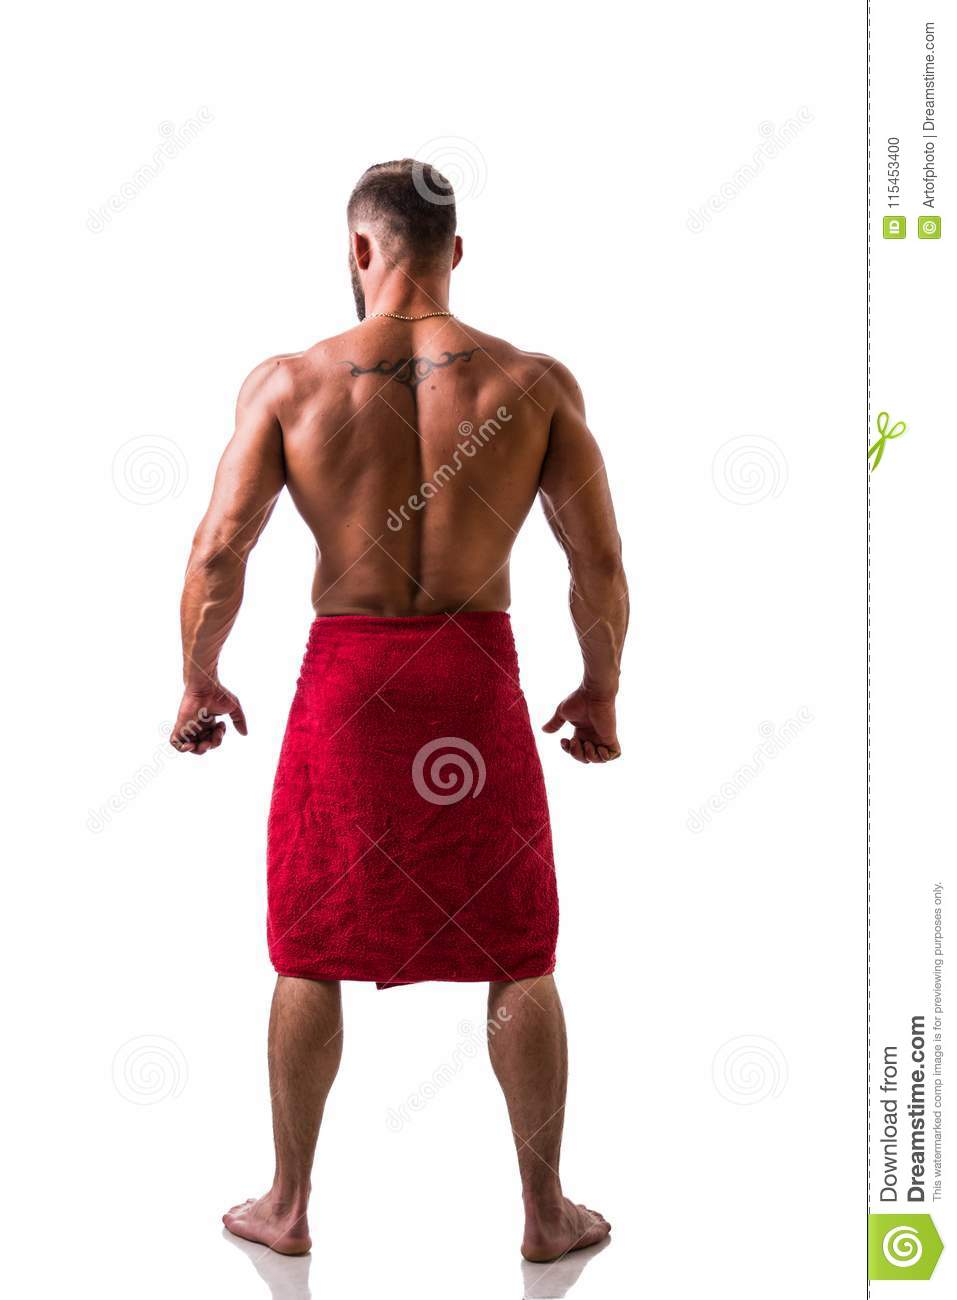 Handsome Topless Muscular Man With Towel Stock Photo - Image of ... fa83e3b6c